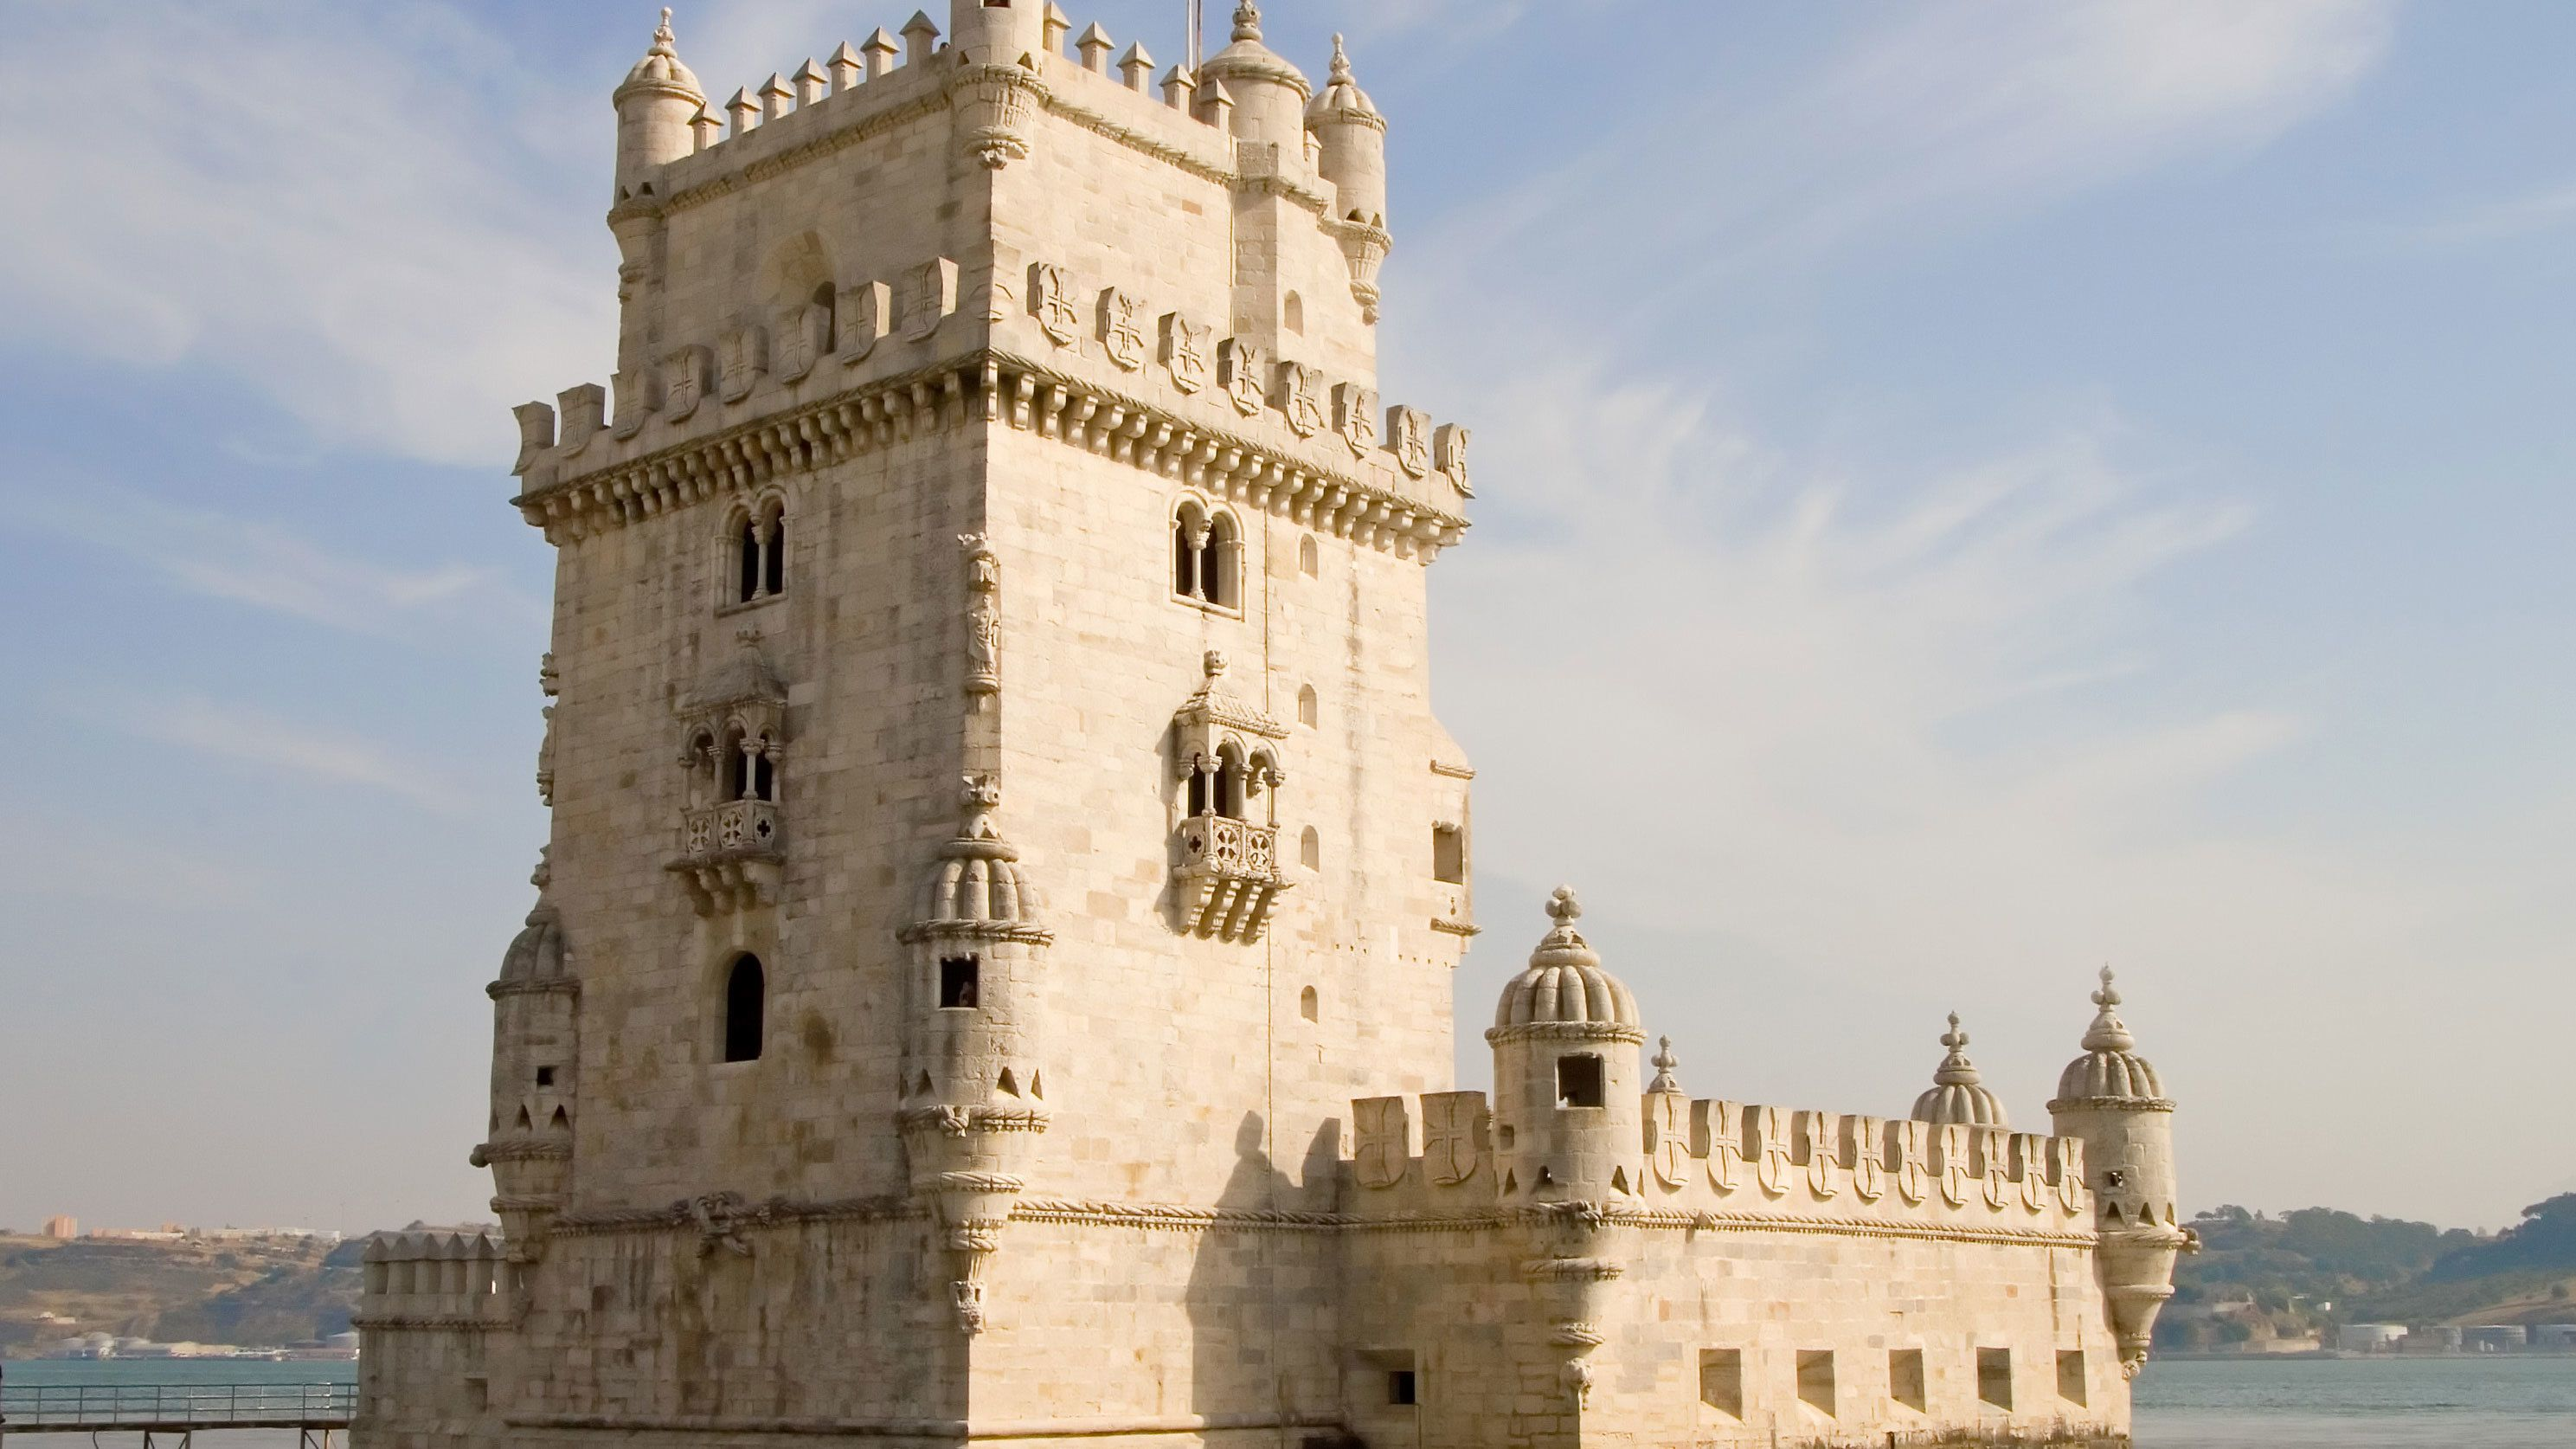 the Belem tower in Portugal